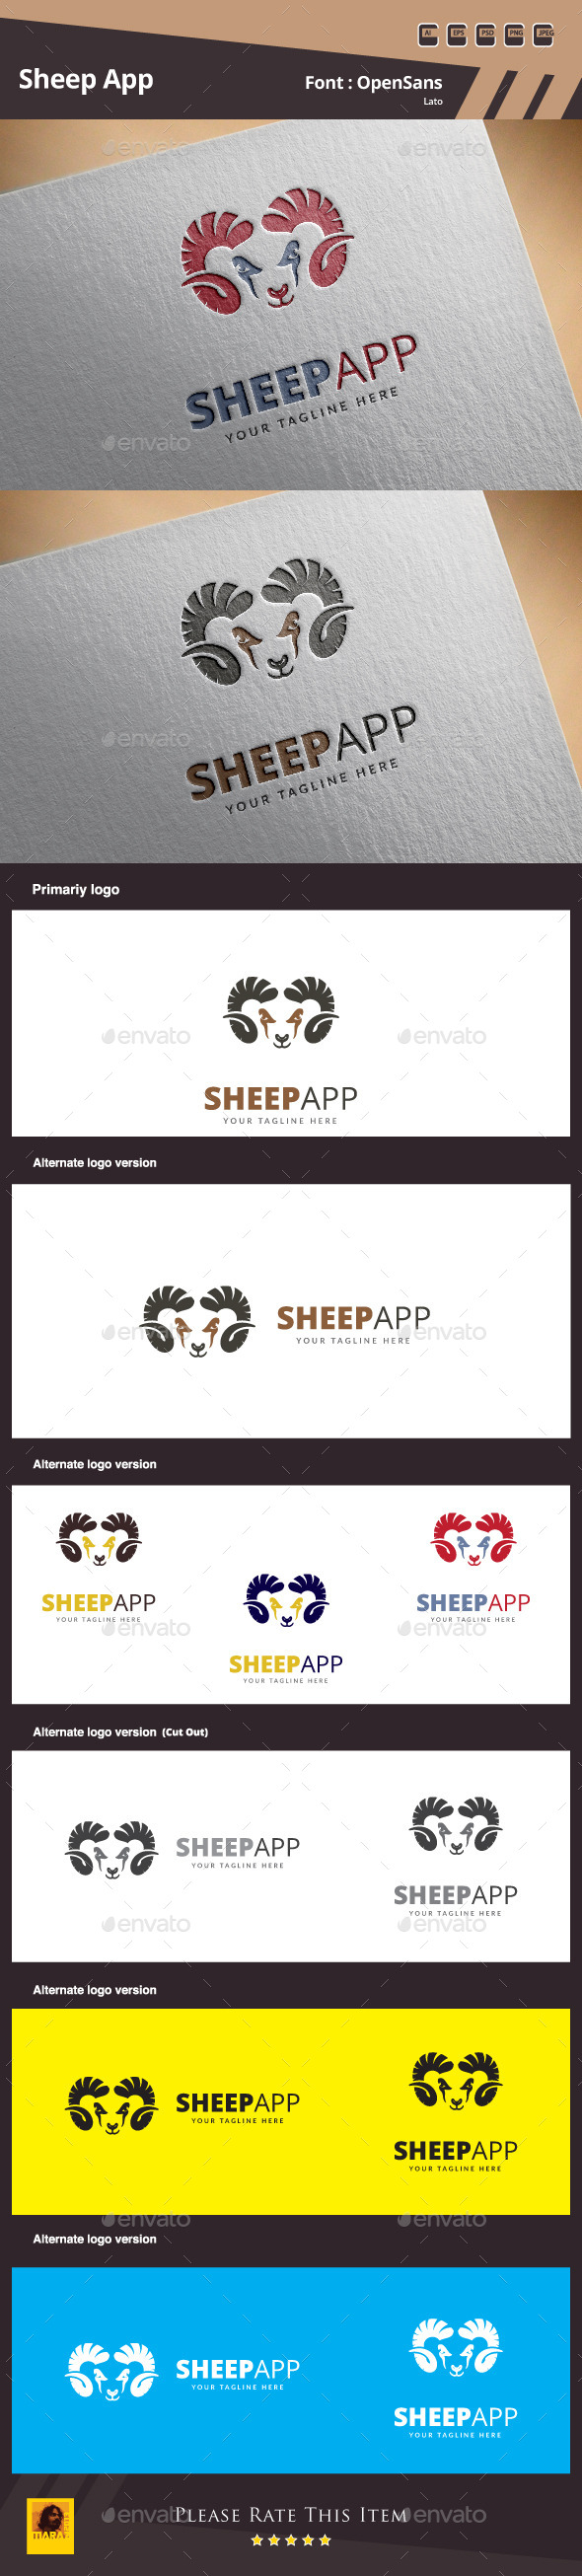 GraphicRiver Sheep App Logo Template 10823621